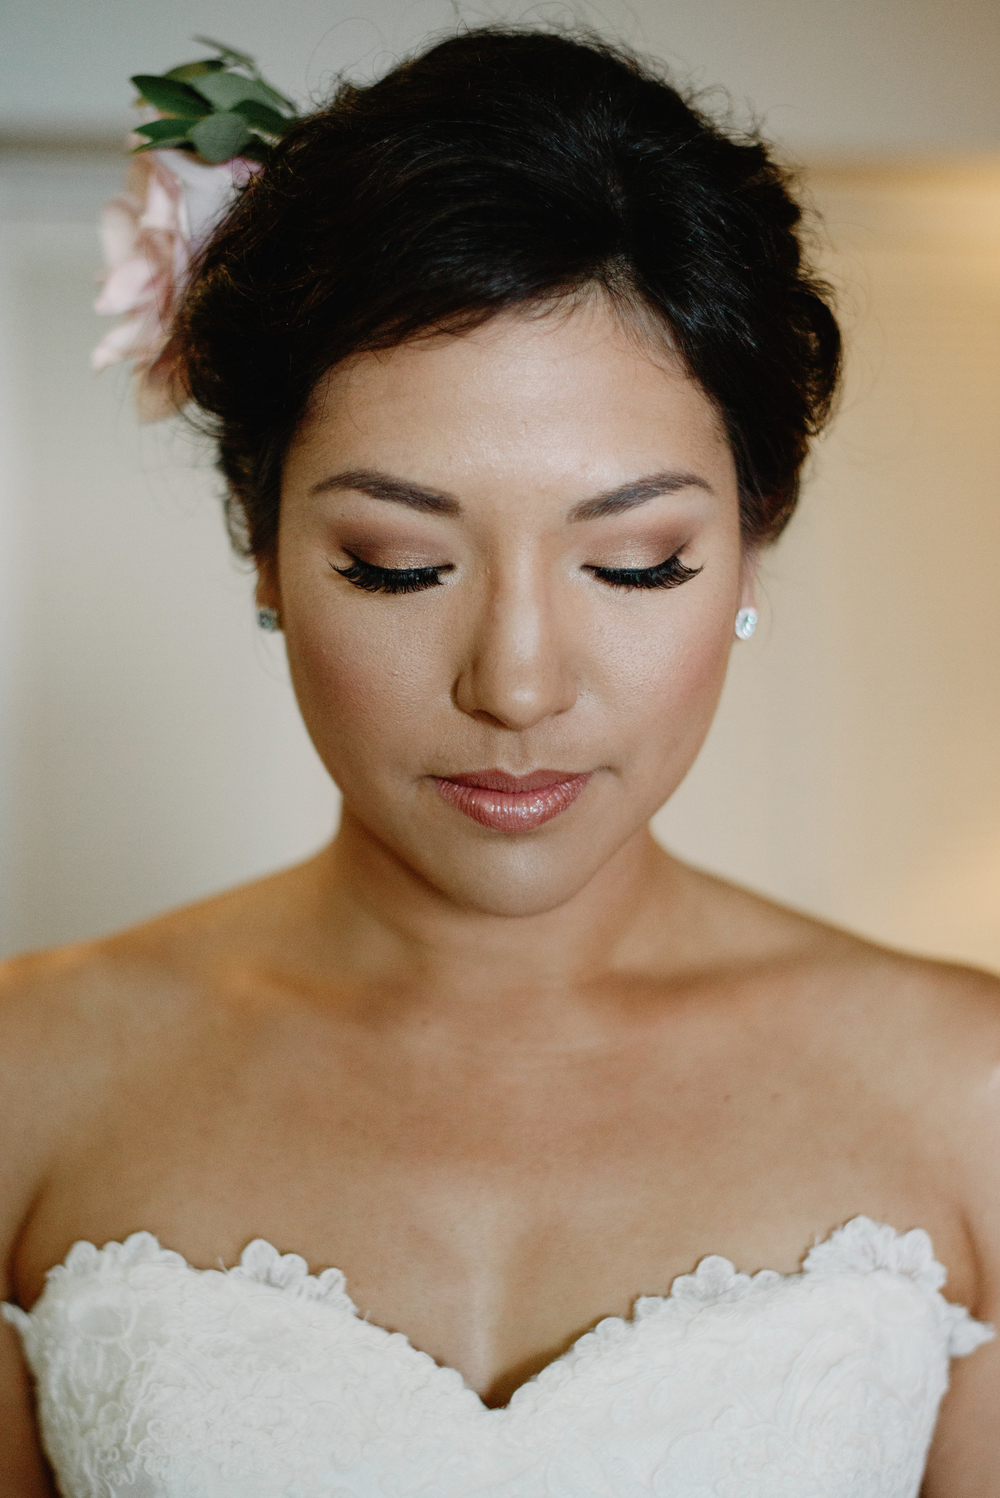 Ko-Olina-Oahu-Hawaii-Blush-Makeup-and-Hair-Wedding-makeup-wedding-hair-June-Cochran-Photography